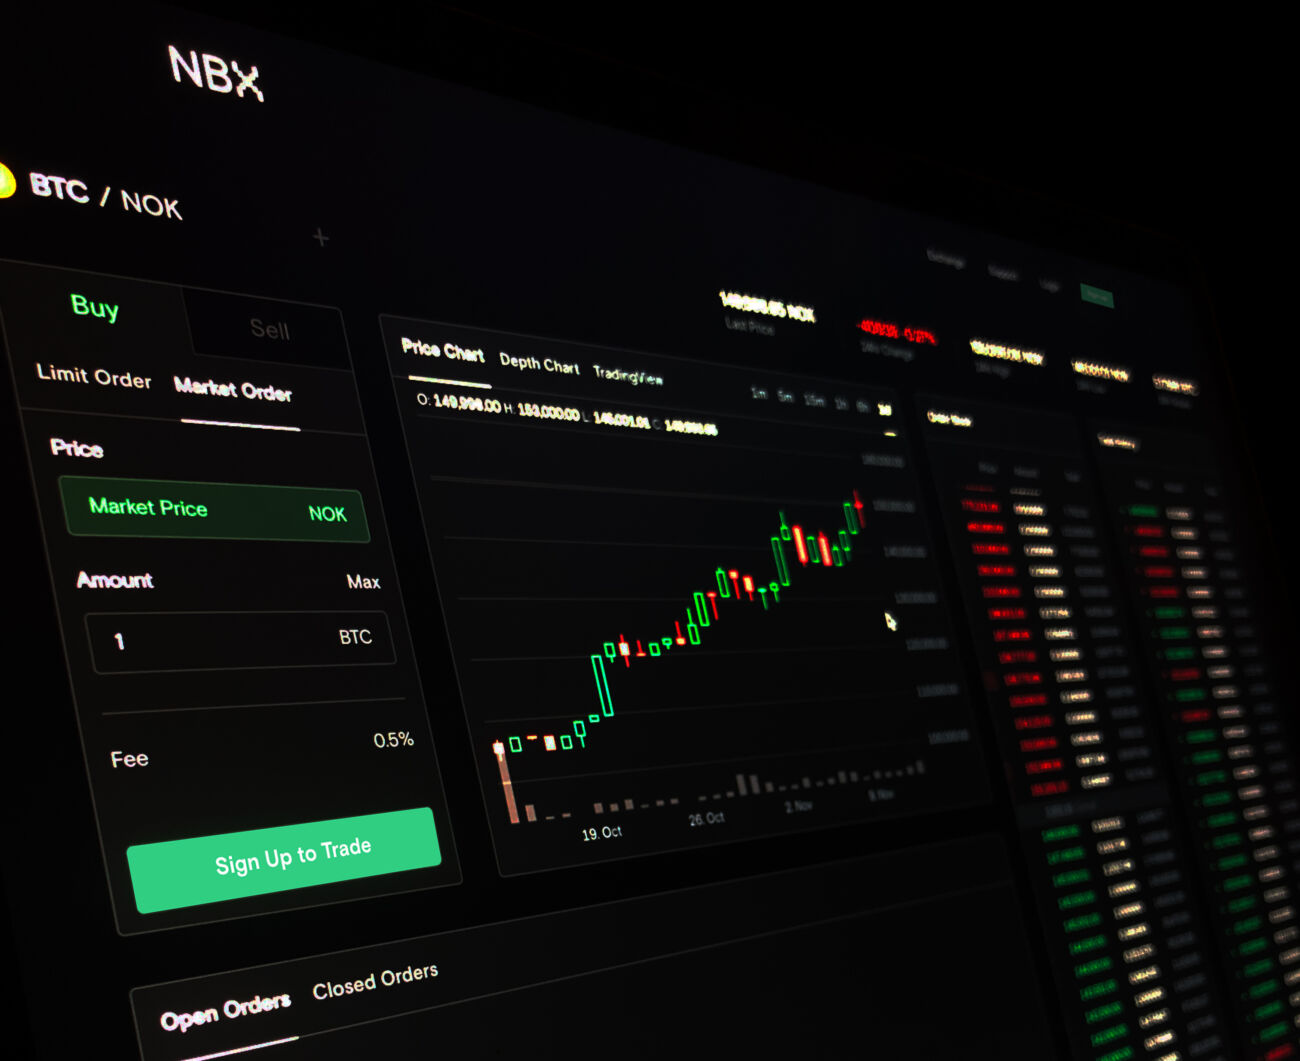 Norwegian Block Exchange (NBX) kryptovalutabørs